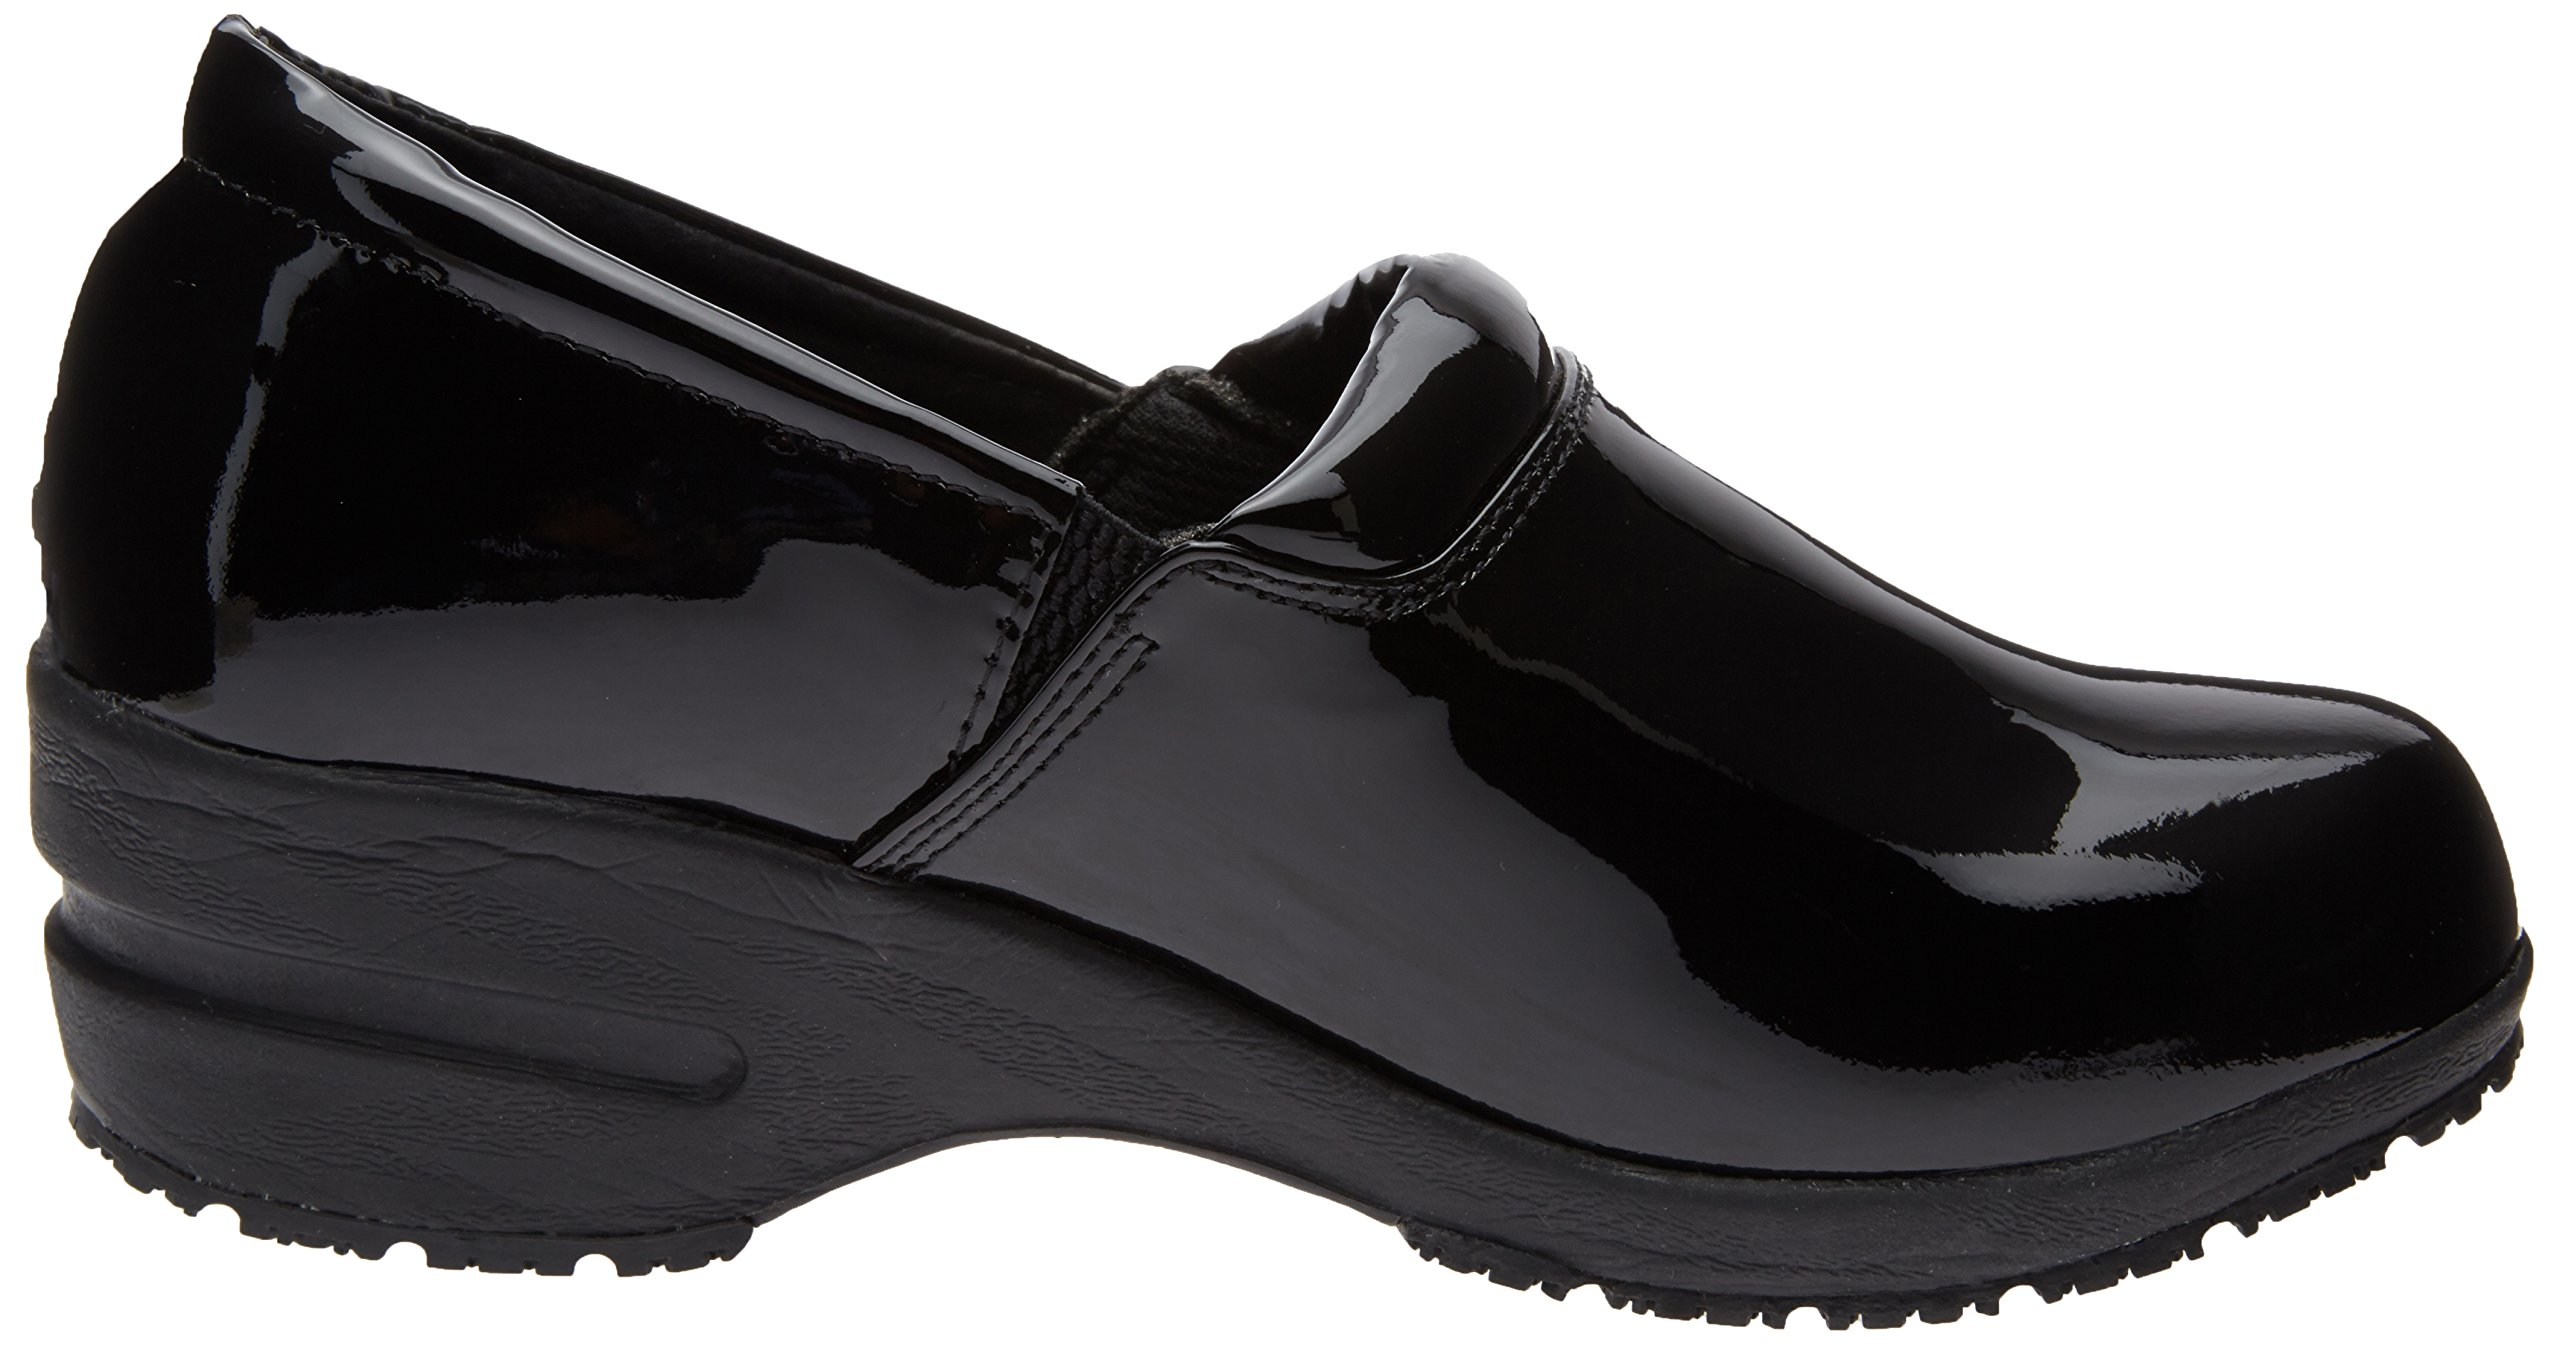 Cherokee Women's Patricia Step In Shoe, Black Patent, 6.5 M US by Cherokee (Image #7)